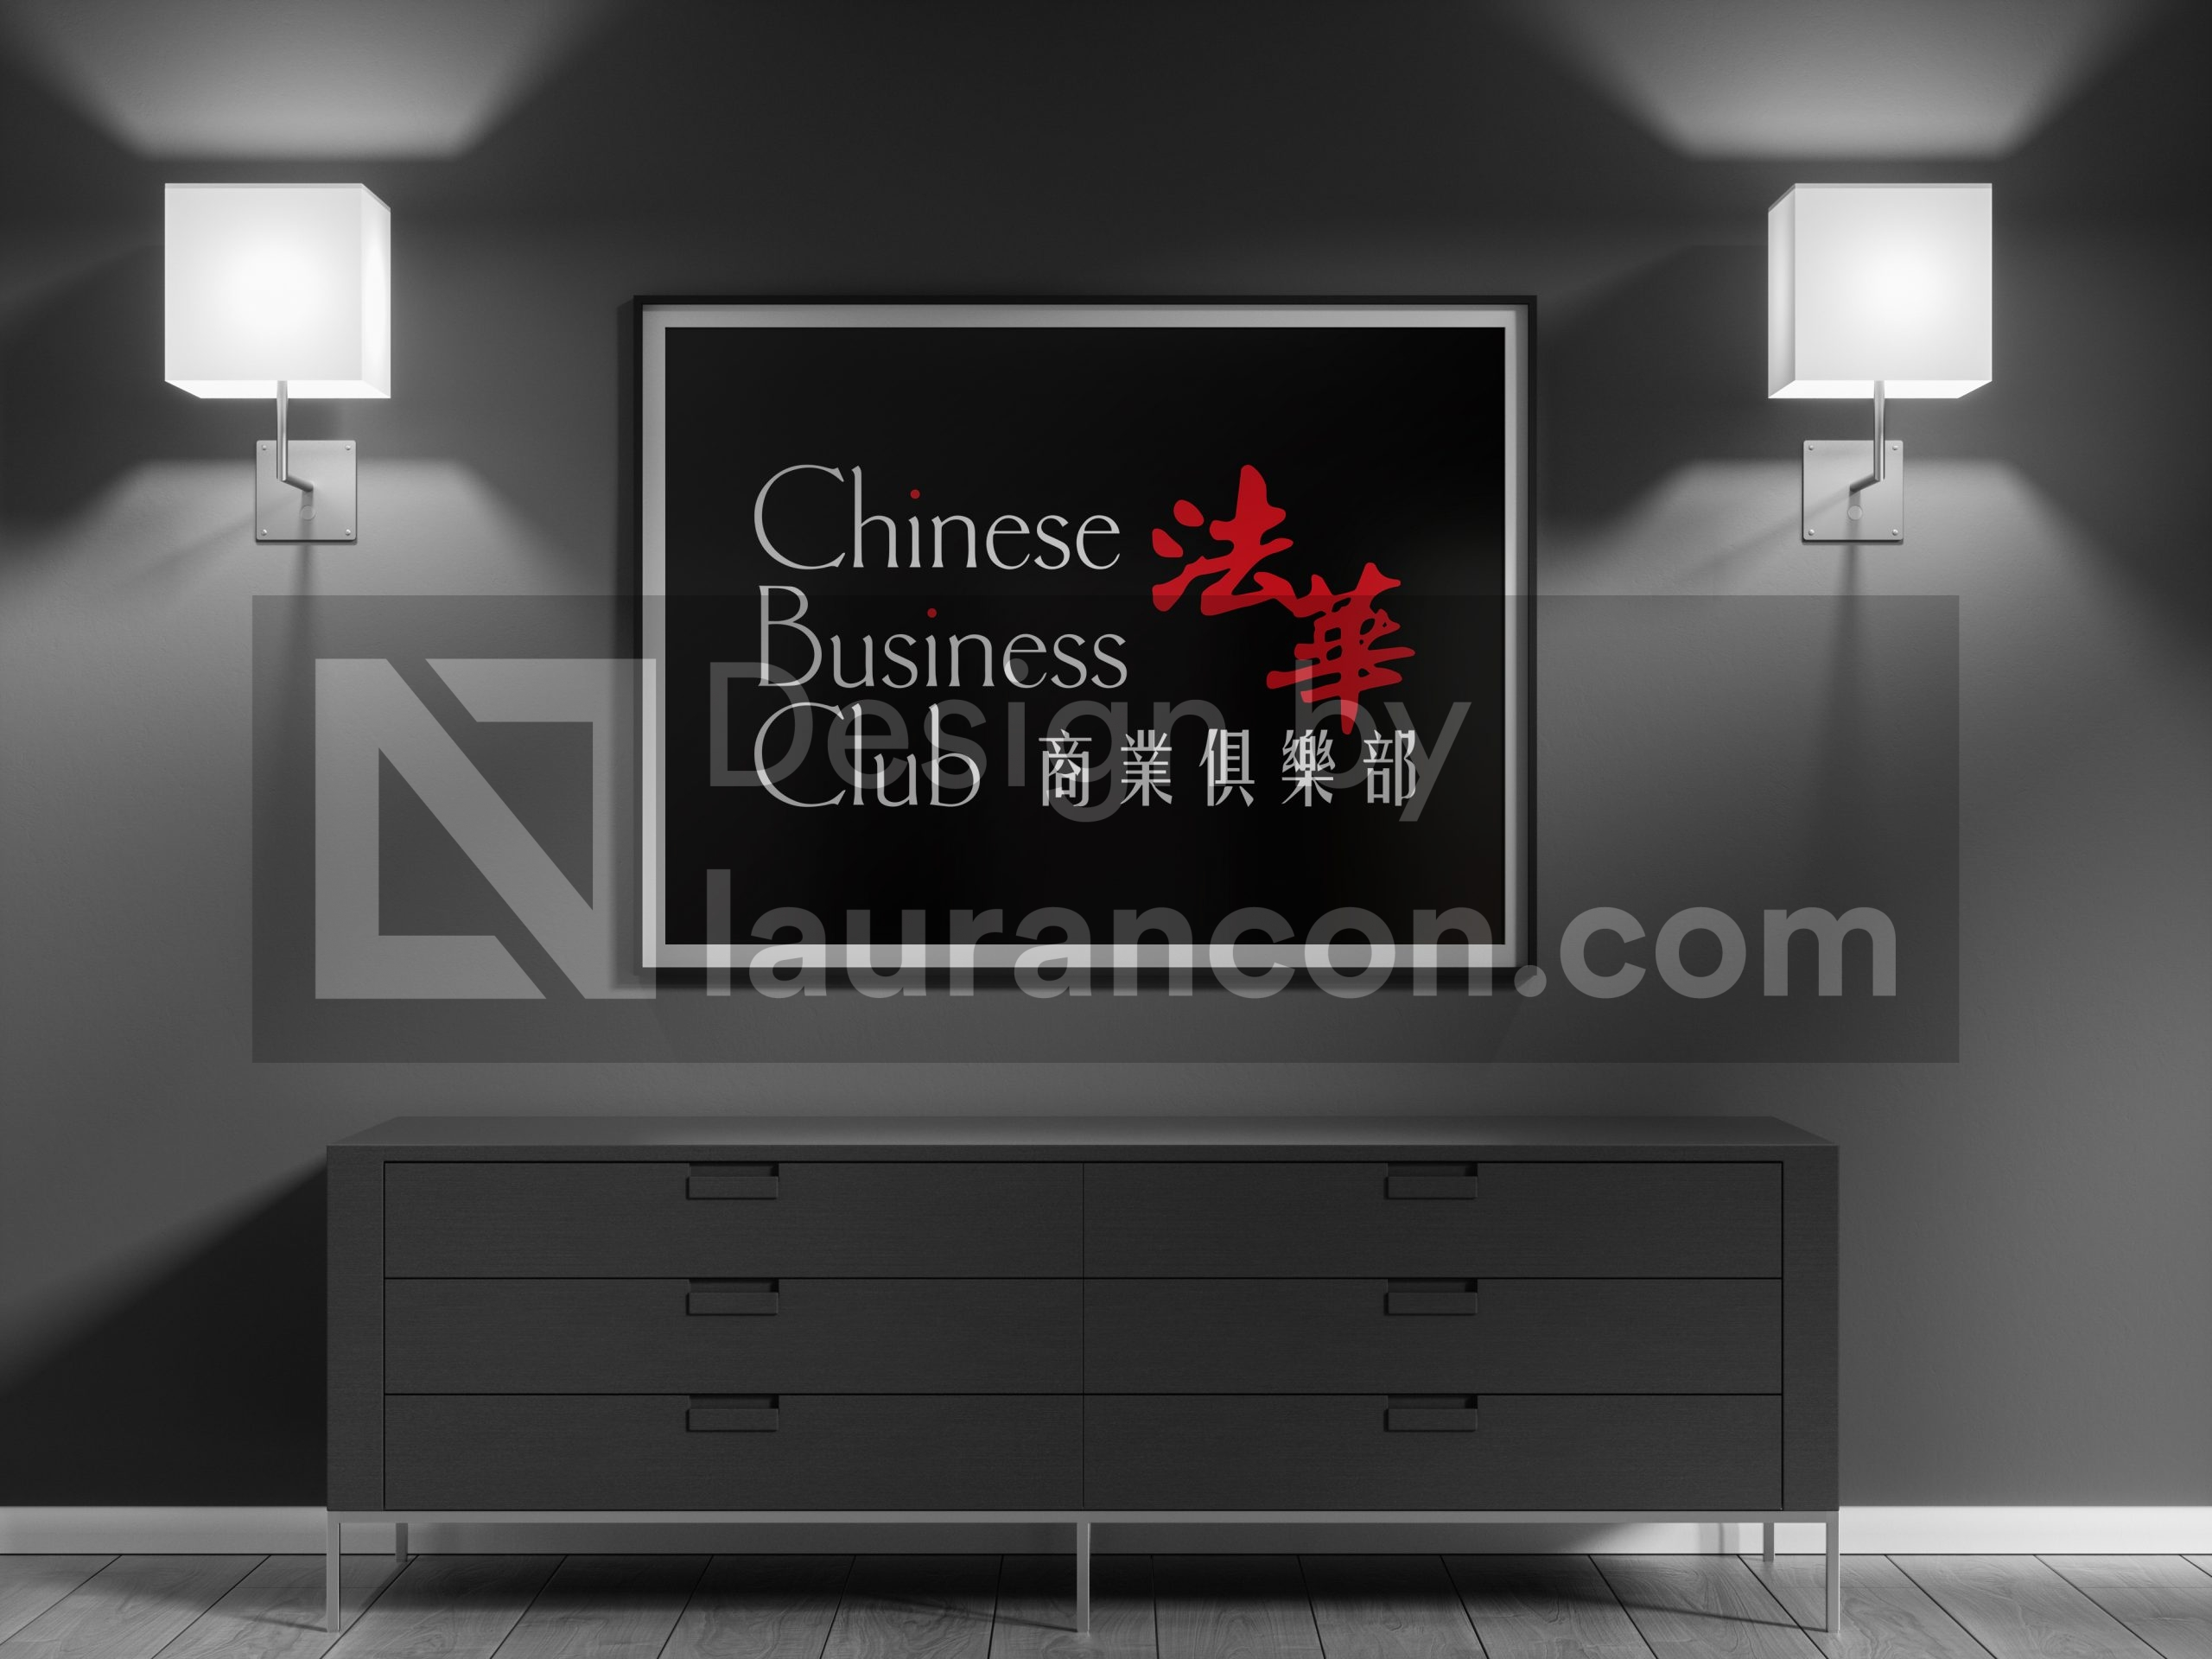 48 x 36 Inch Modern Poster Mockup by Anthony Boyd Graphics